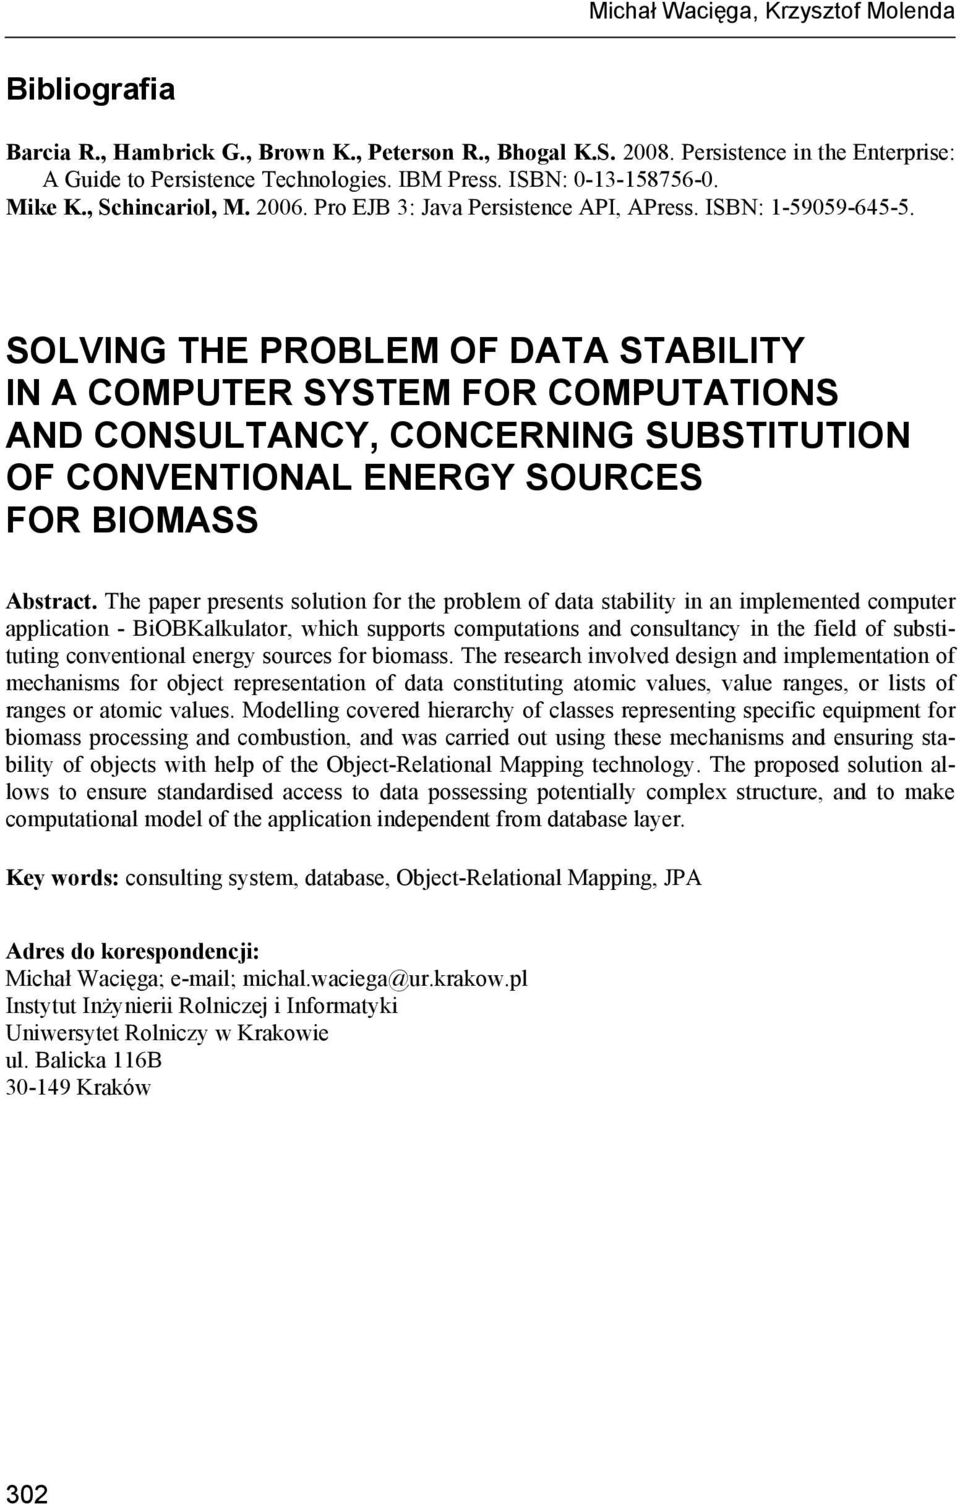 SOLVING THE PROBLEM OF DATA STABILITY IN A COMPUTER SYSTEM FOR COMPUTATIONS AND CONSULTANCY, CONCERNING SUBSTITUTION OF CONVENTIONAL ENERGY SOURCES FOR BIOMASS Abstract.